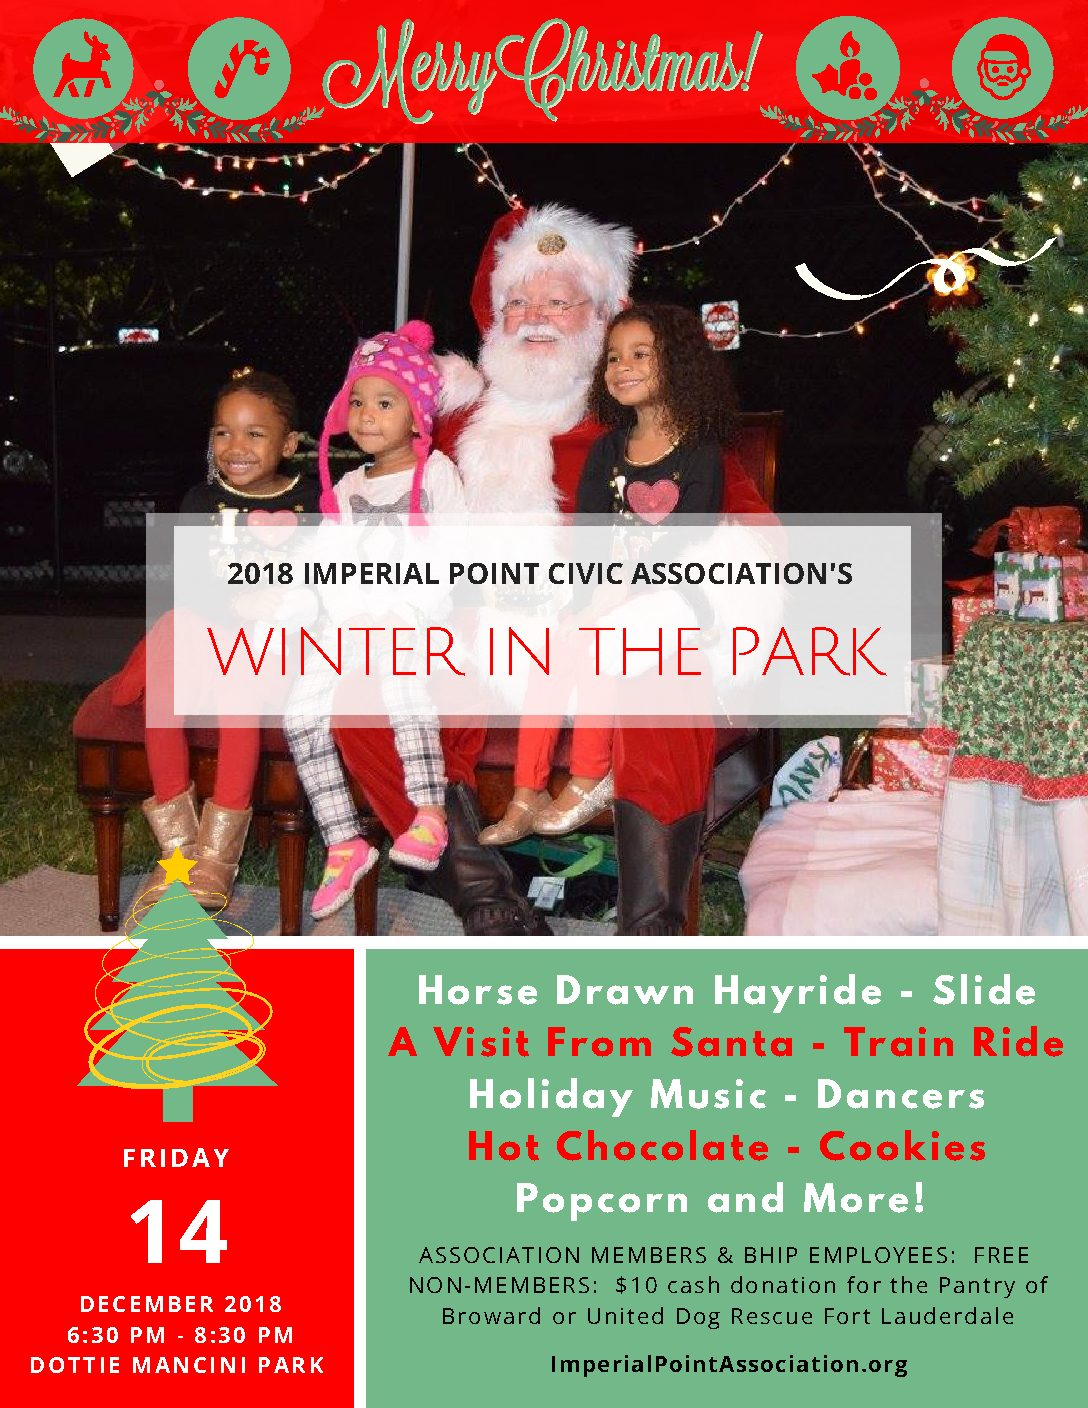 IPA Winter-in-the-Park Flyer 2018